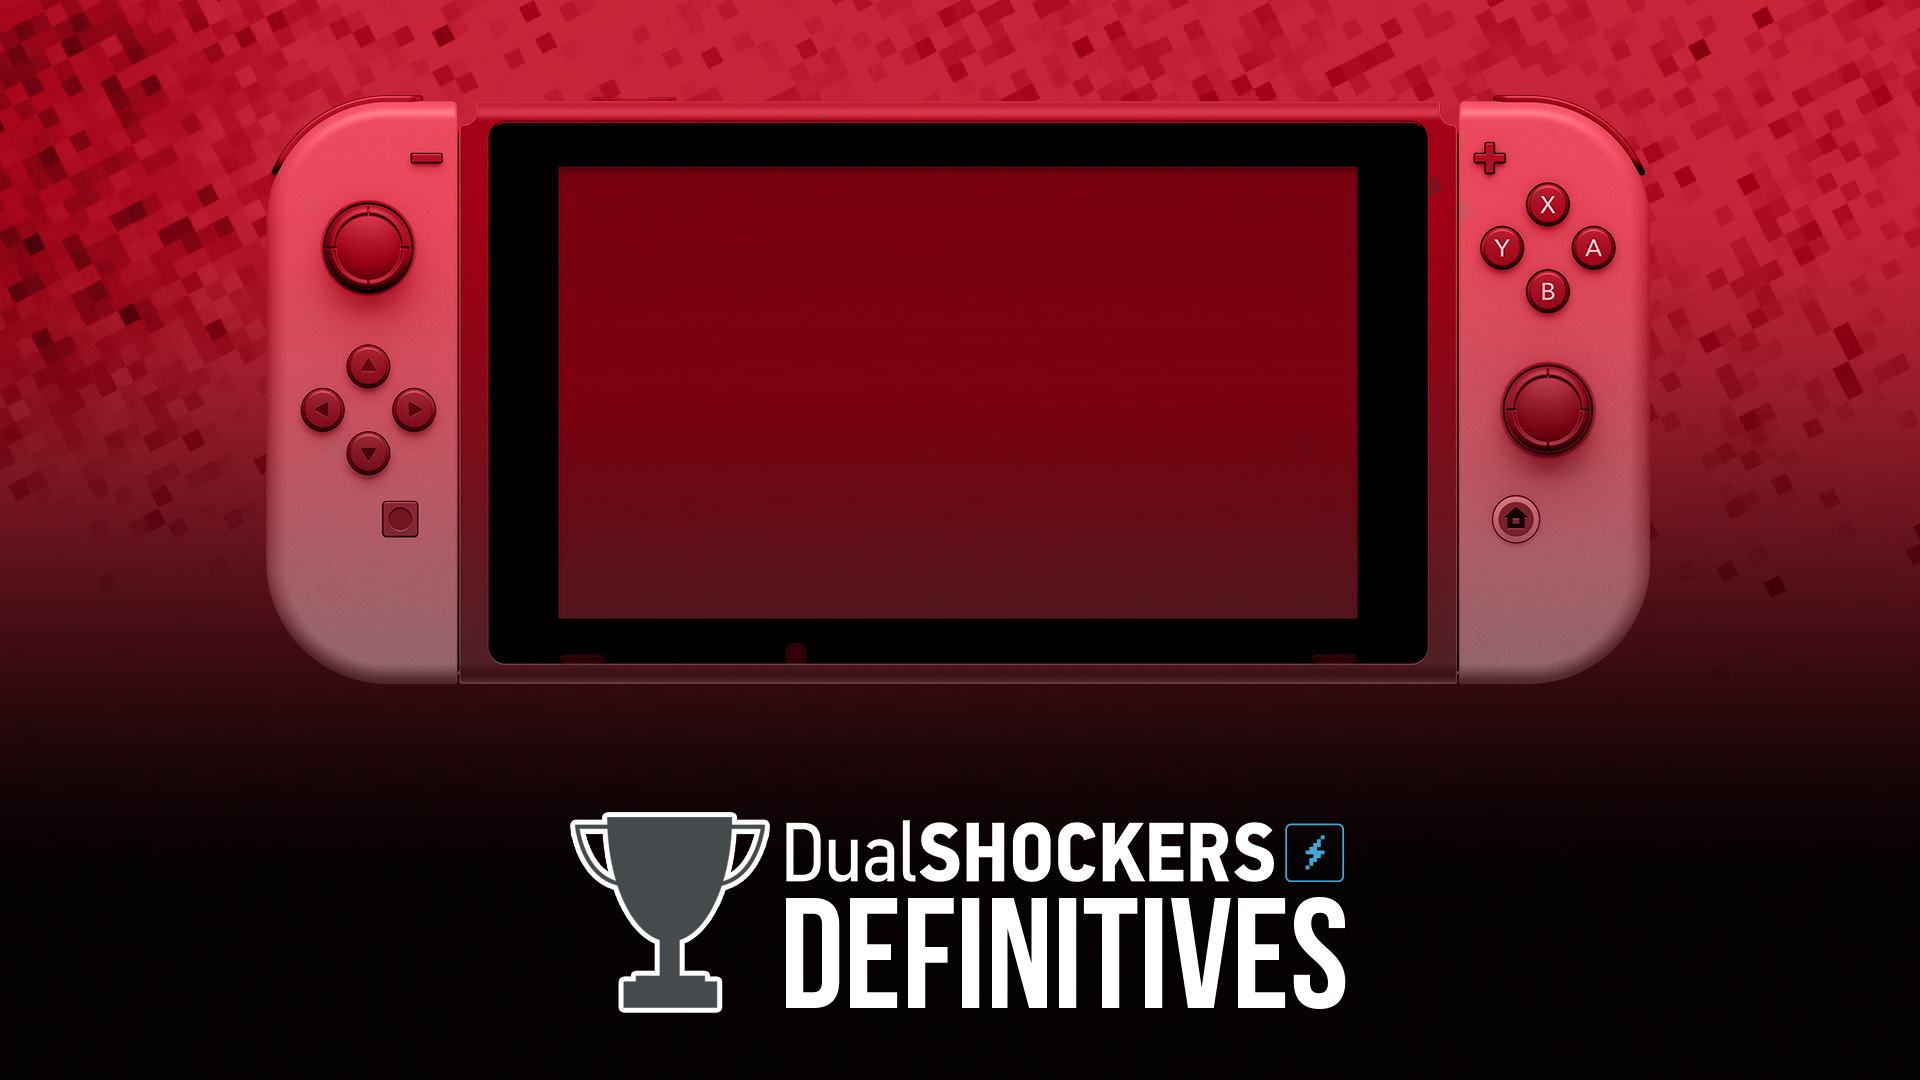 DualShockers Definitives — The Top 10 Essential Nintendo Switch Games